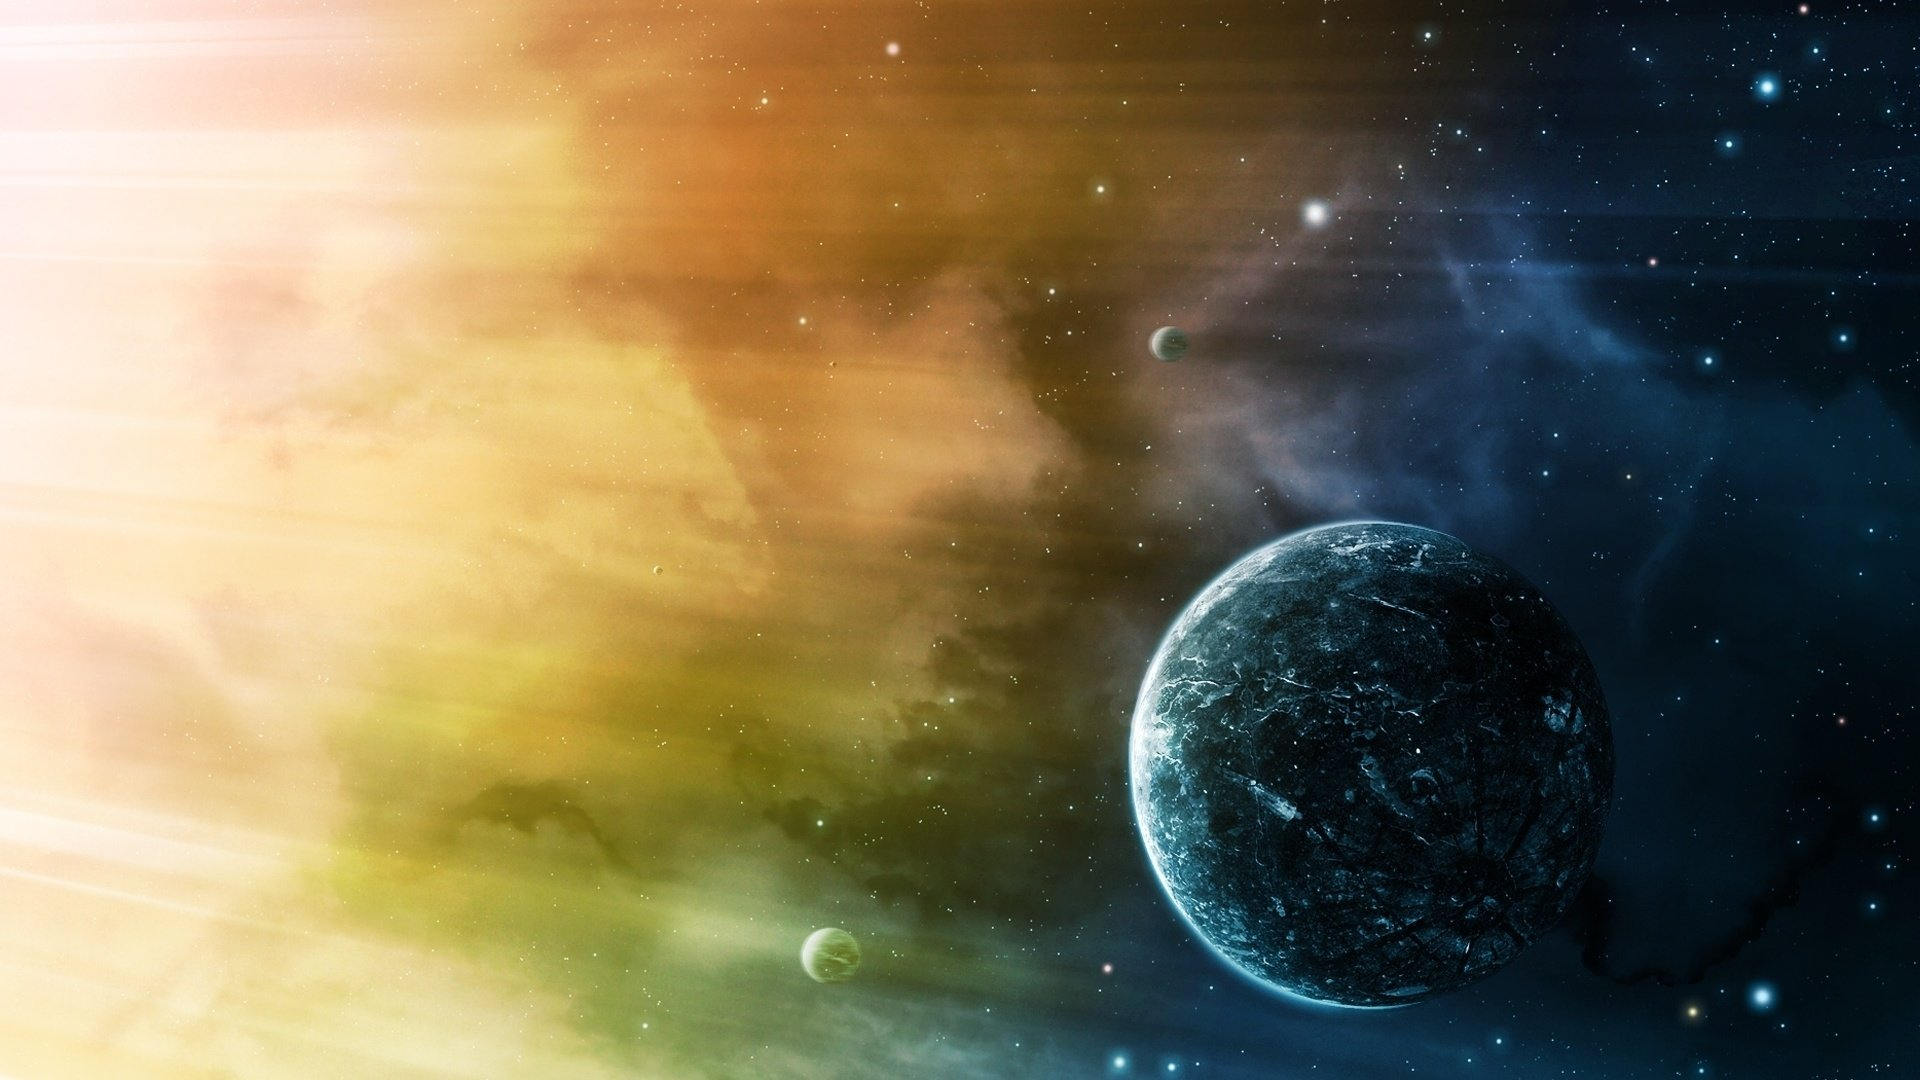 space universe galaxy cosmos astronomy planet star colors colorful sky nature planets stars galaxies